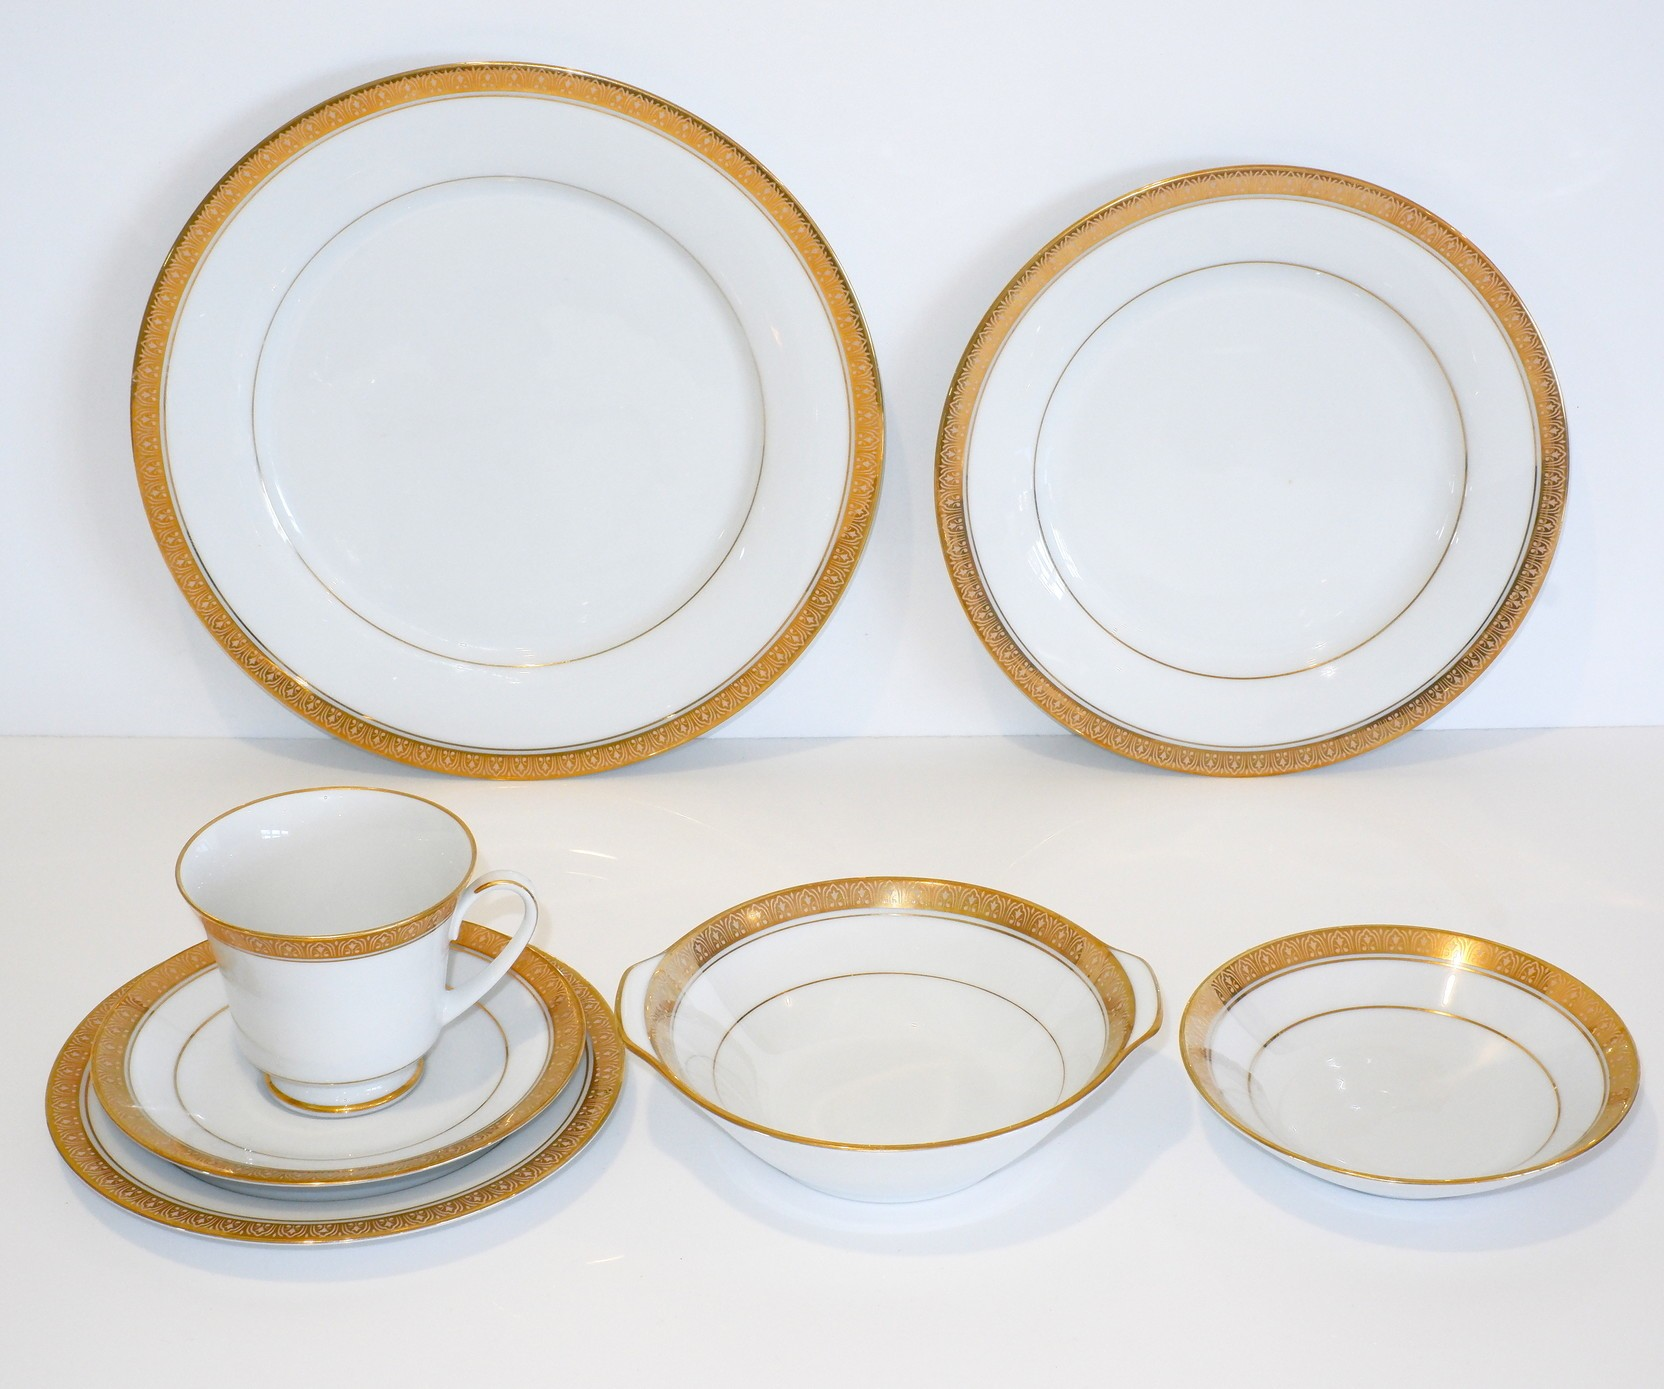 'Six Person Dinner Setting with Spares of Noritake Tiara Pattern'